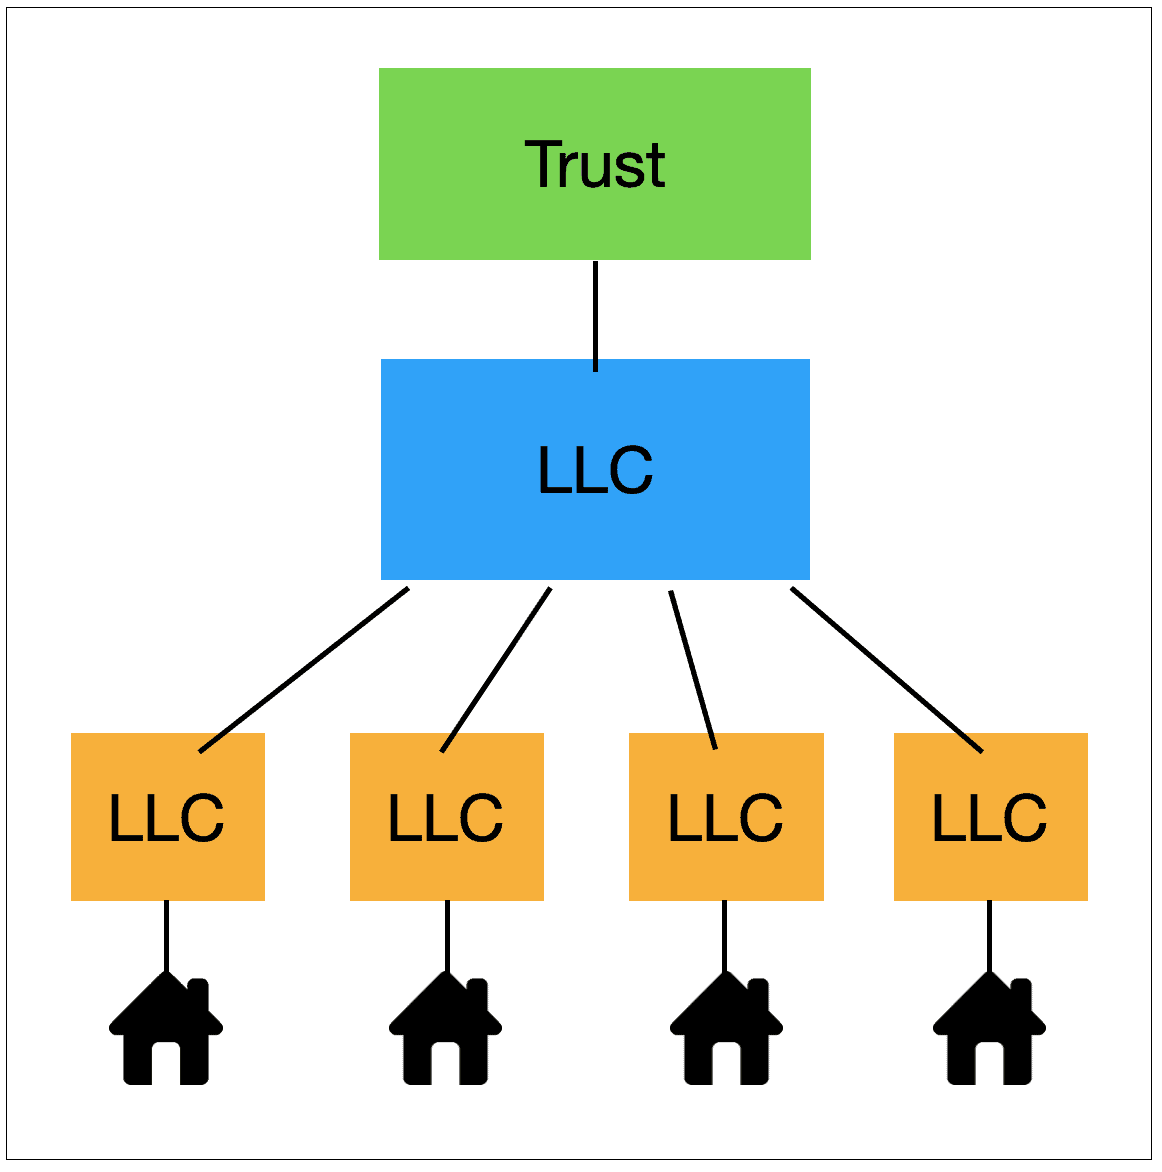 Diagram of Trust owning LLC holding company